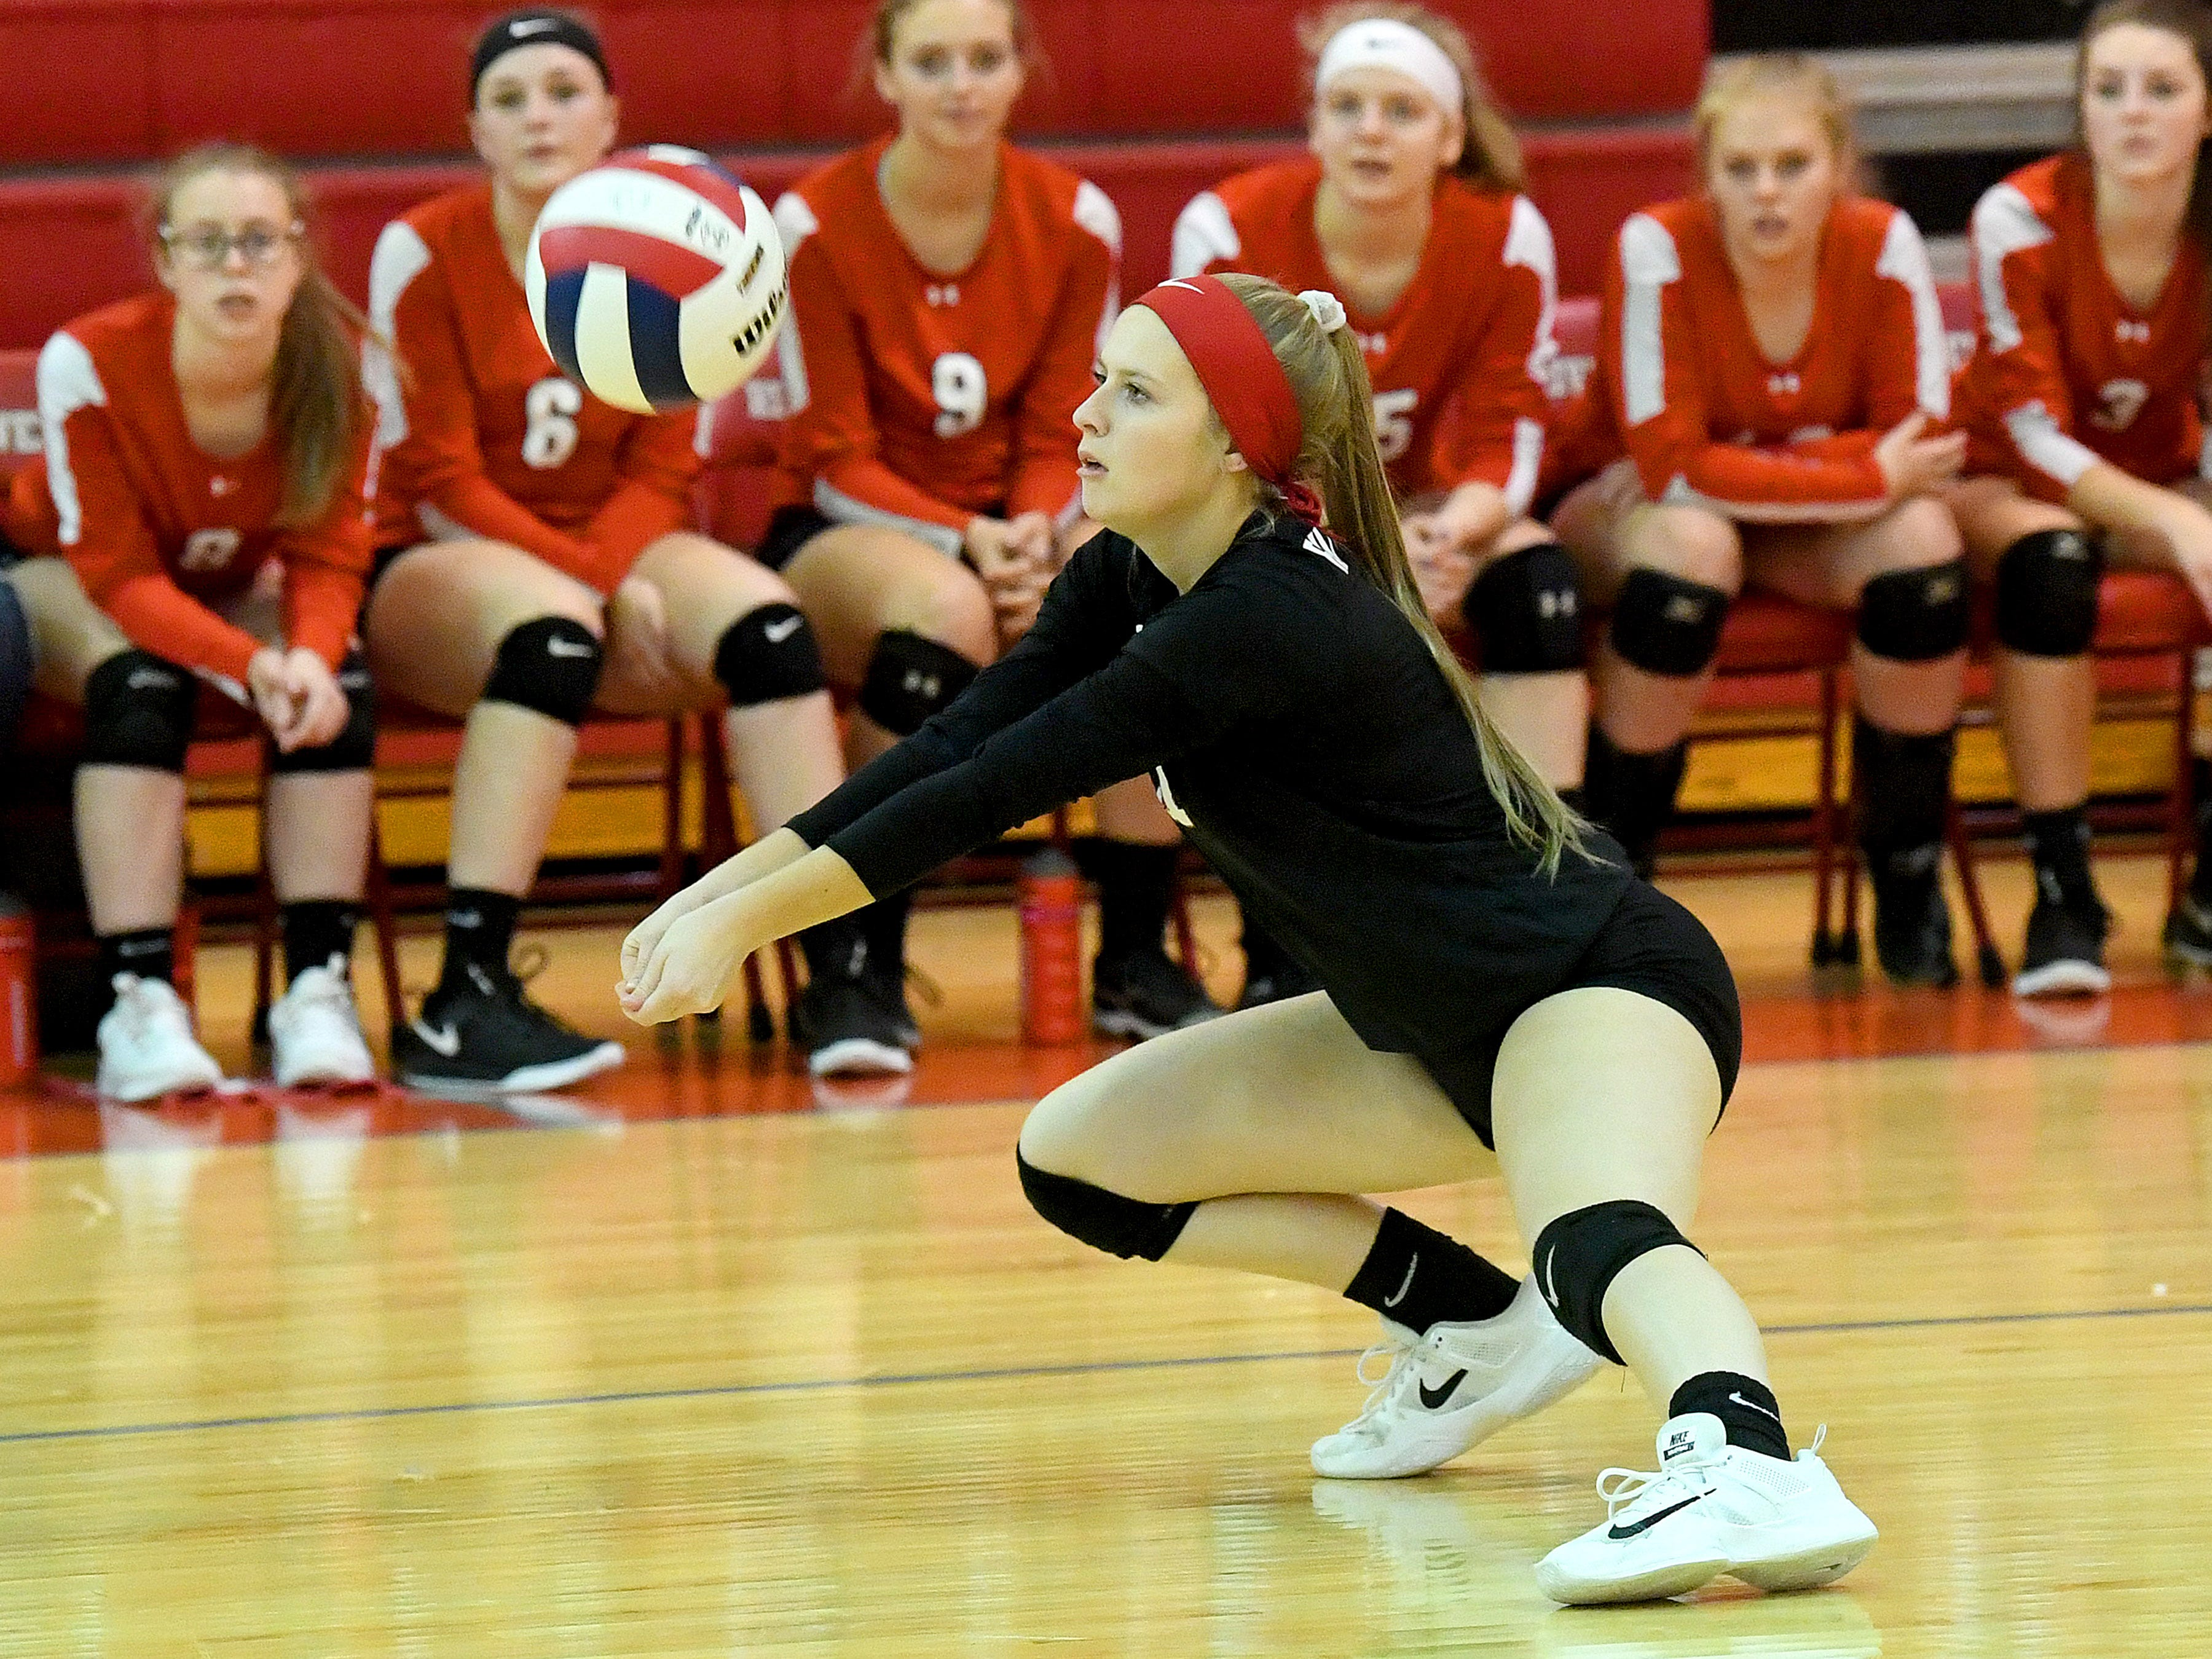 Riverheads' Samantha Persinger bumps the ball during a Region 1B quarterfinal match, played in Greenville on Thursday, Nov. 1, 2018.